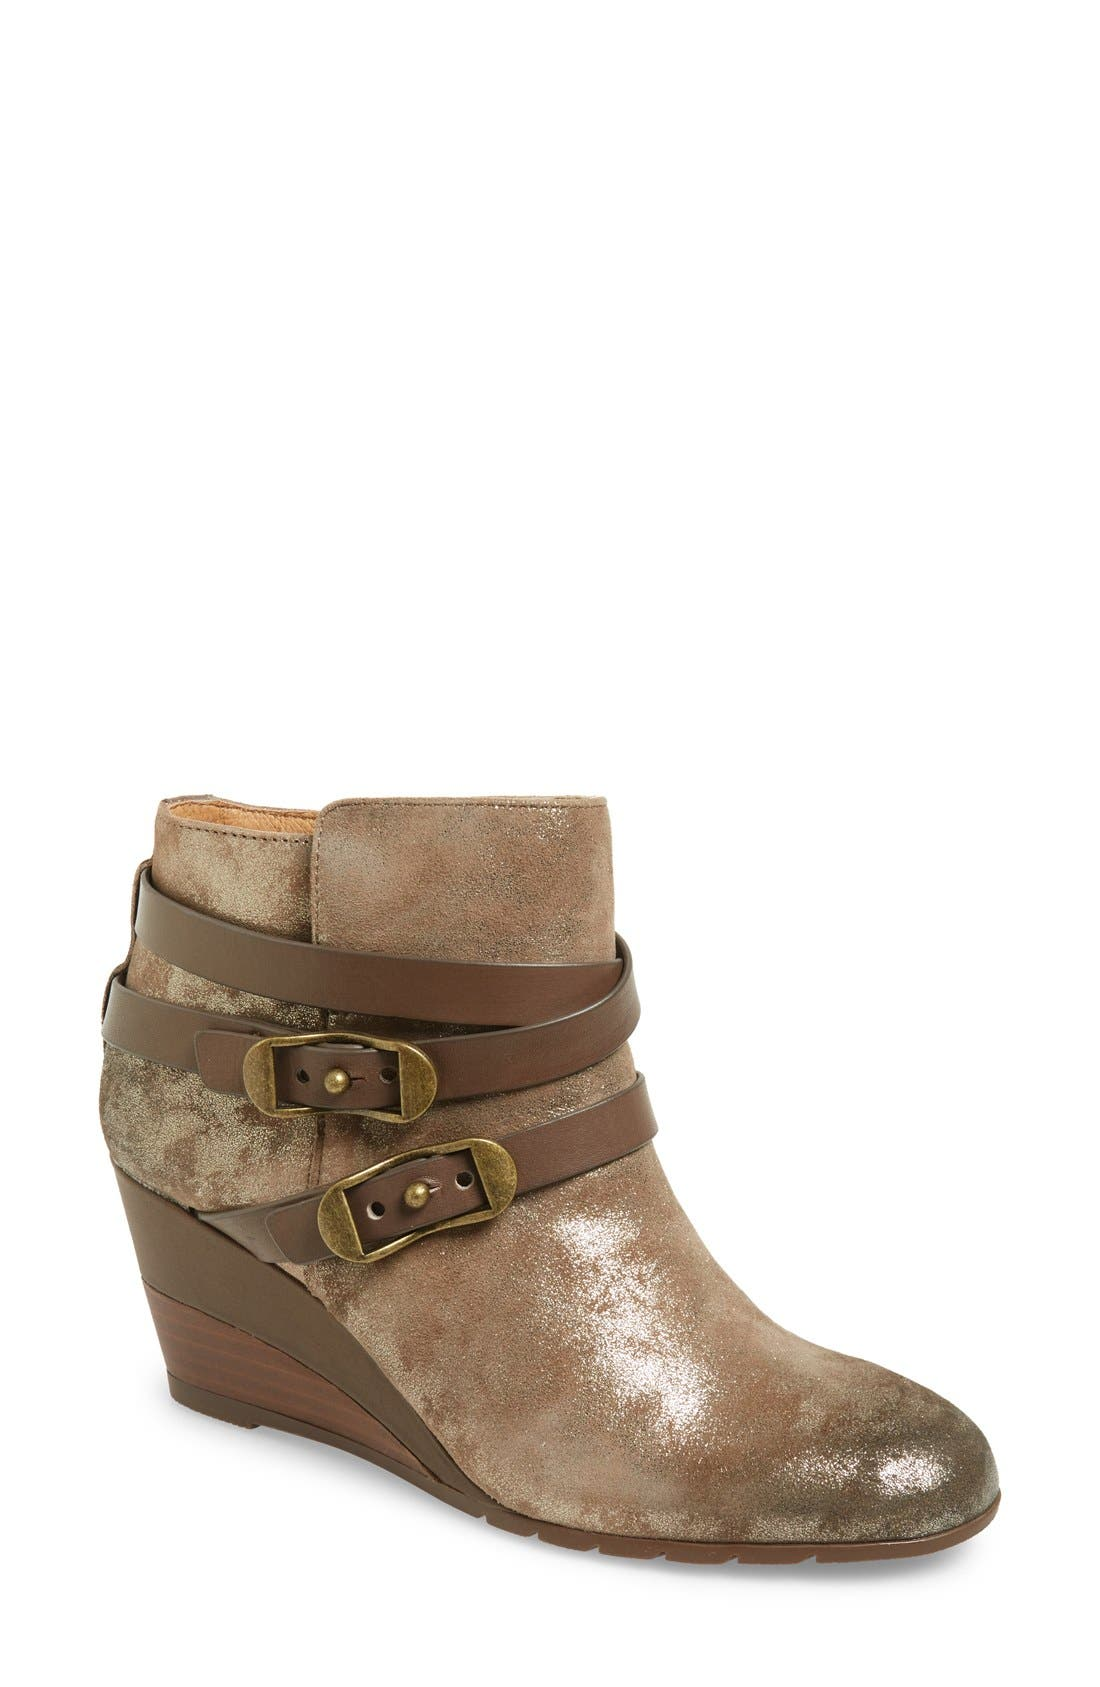 Alternate Image 1 Selected - Söfft 'Oakes' Wedge Bootie (Women)